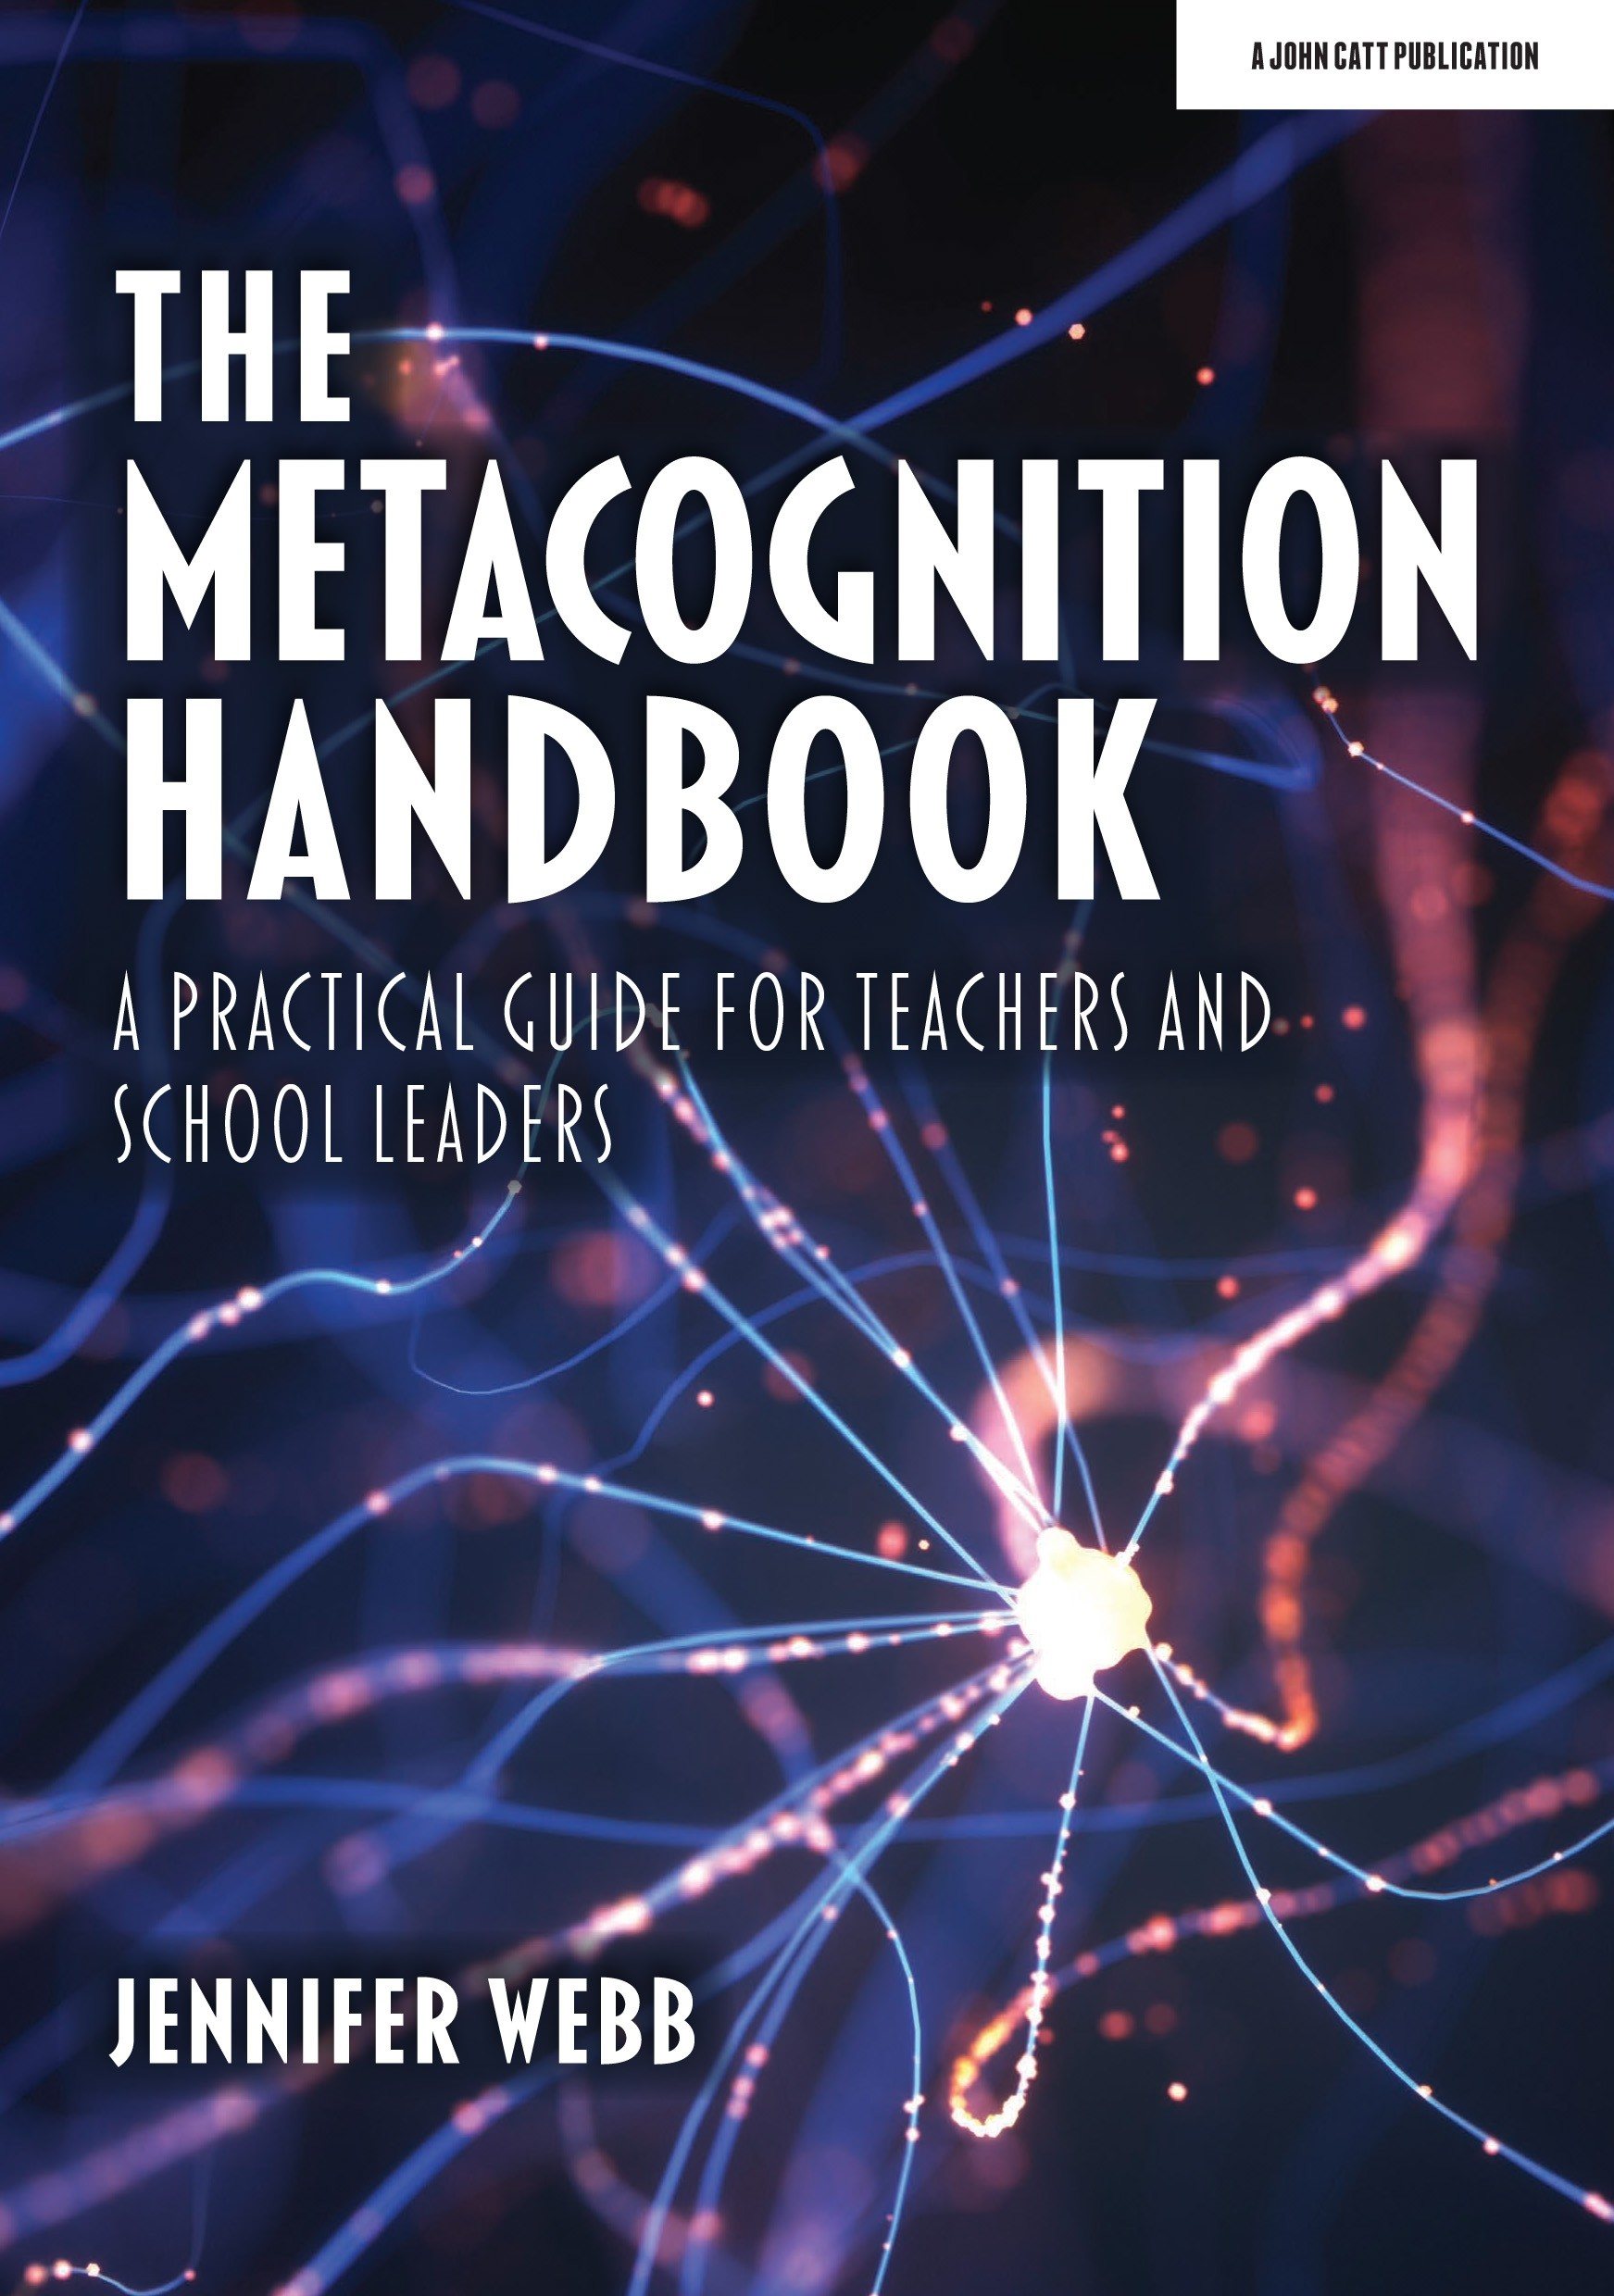 The Metacognition Handbook: A Practical Guide for Teachers and School Leaders